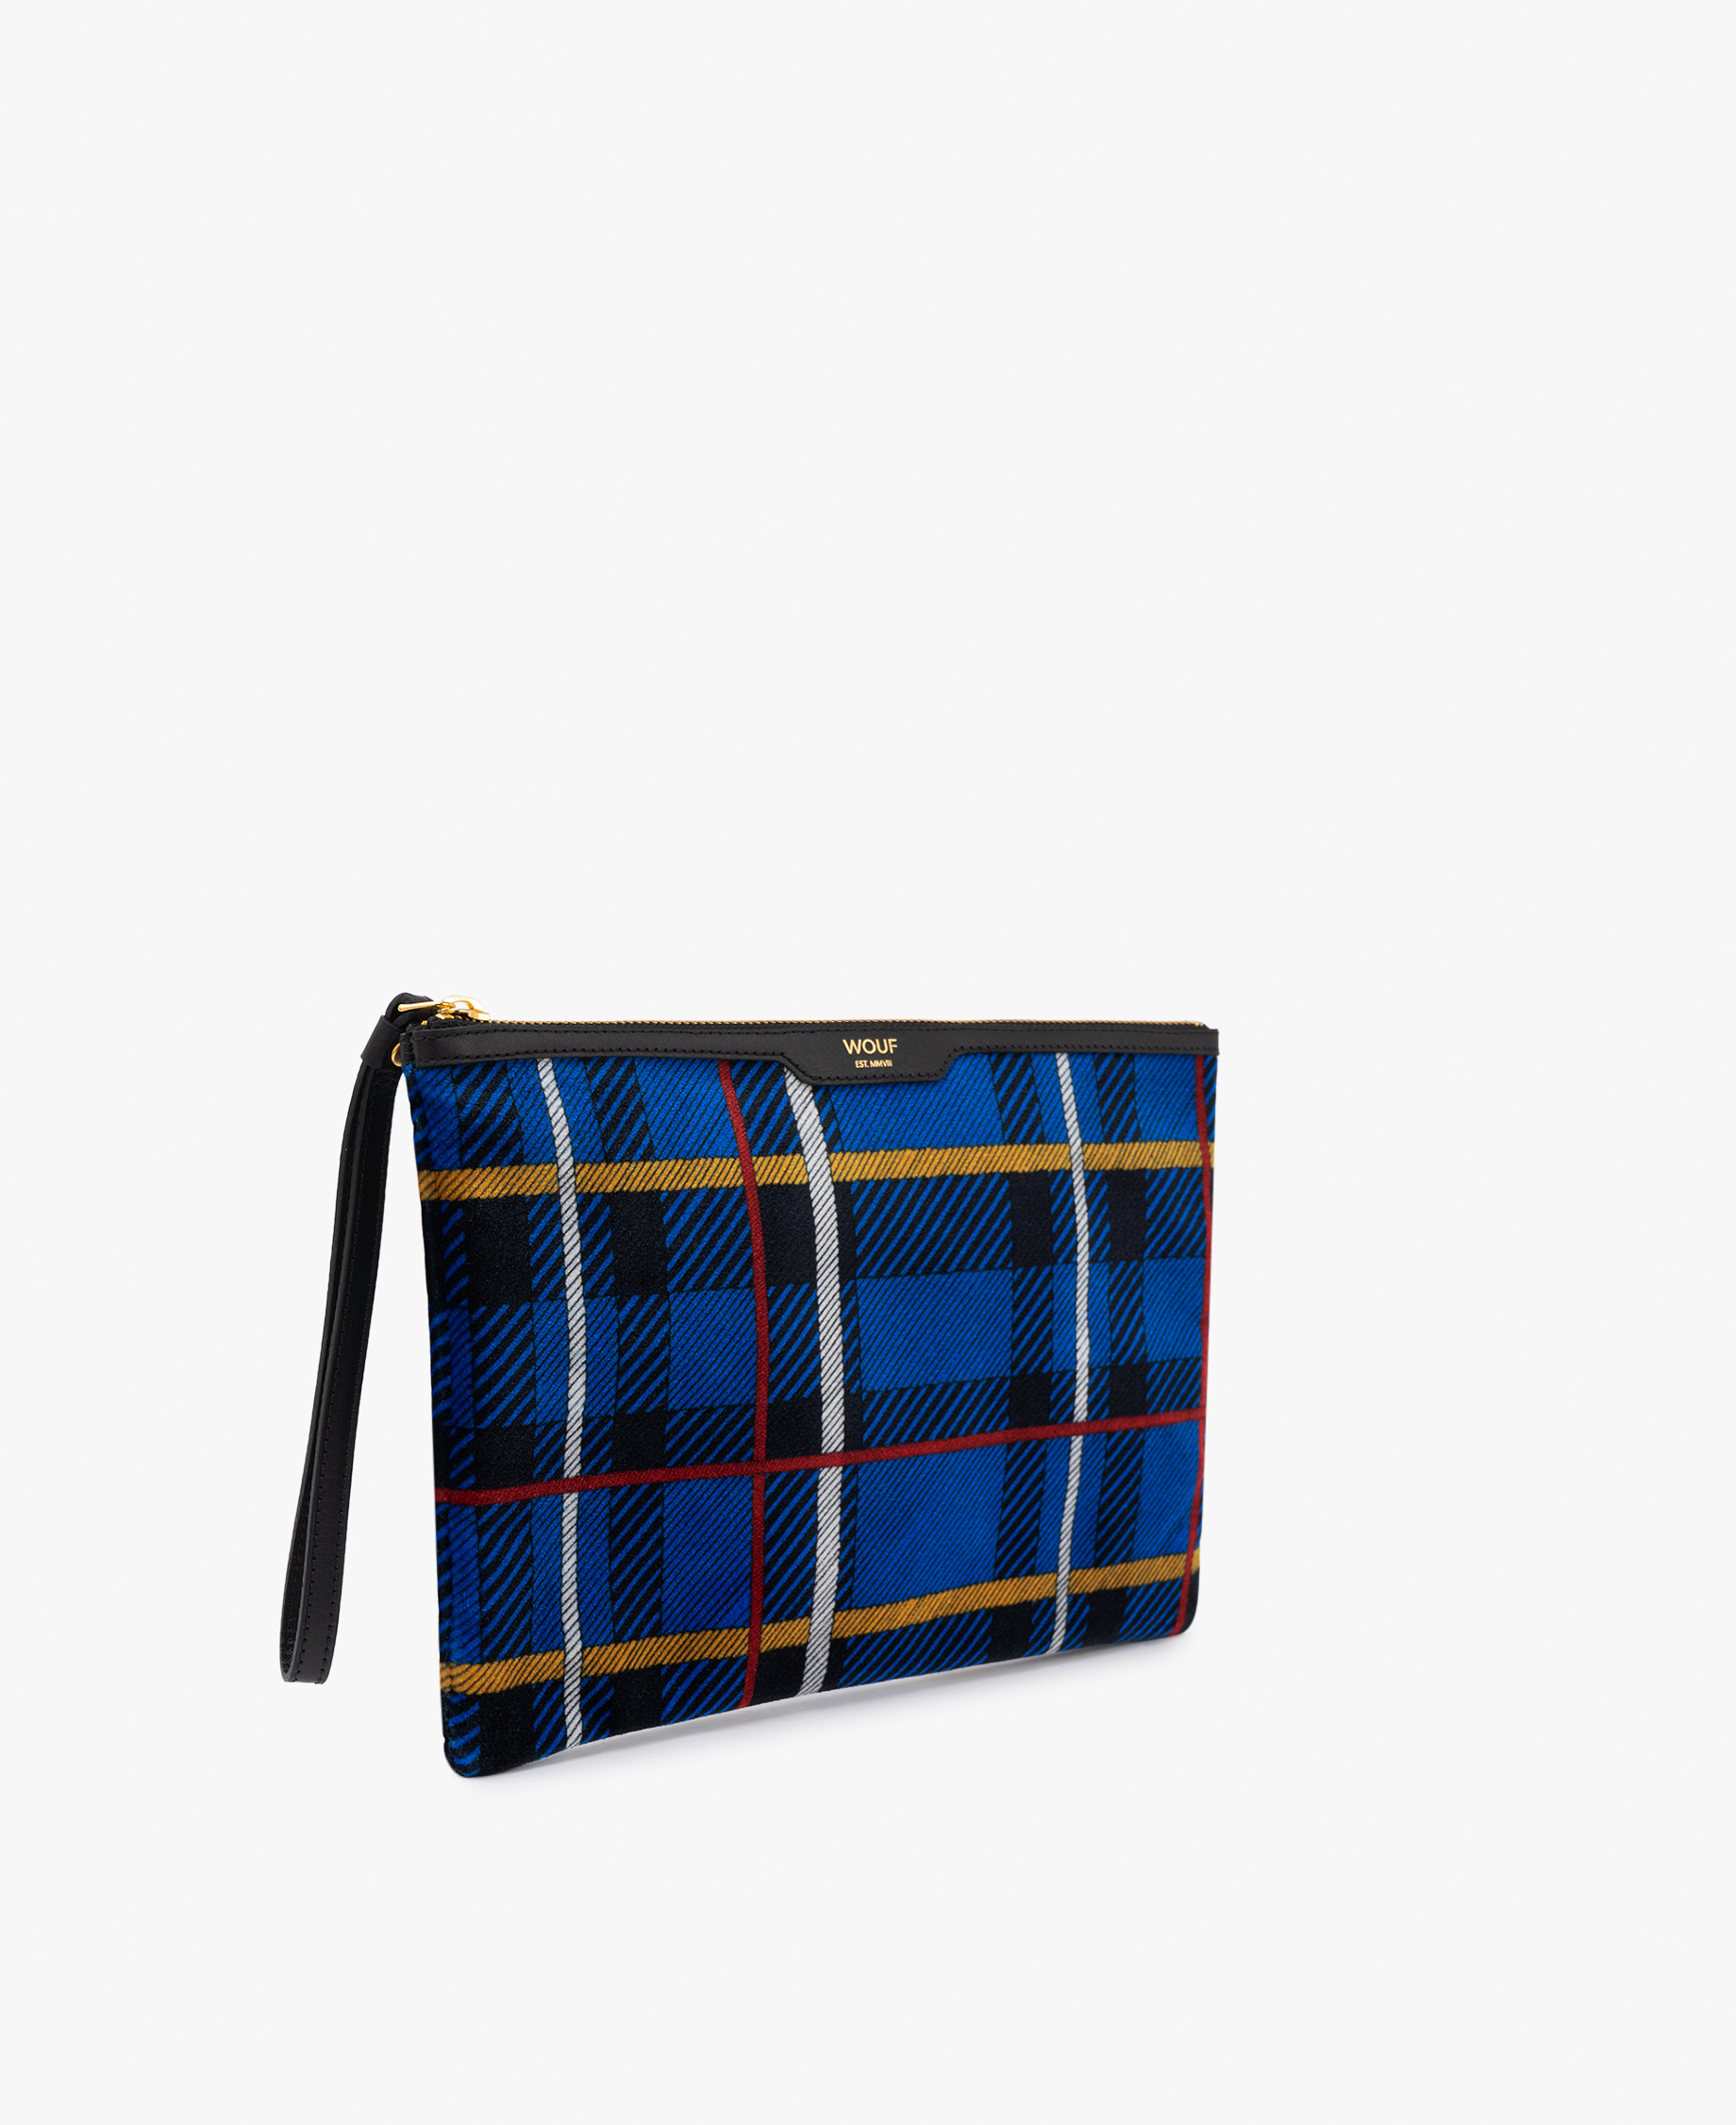 Checkered Evening clutch bag